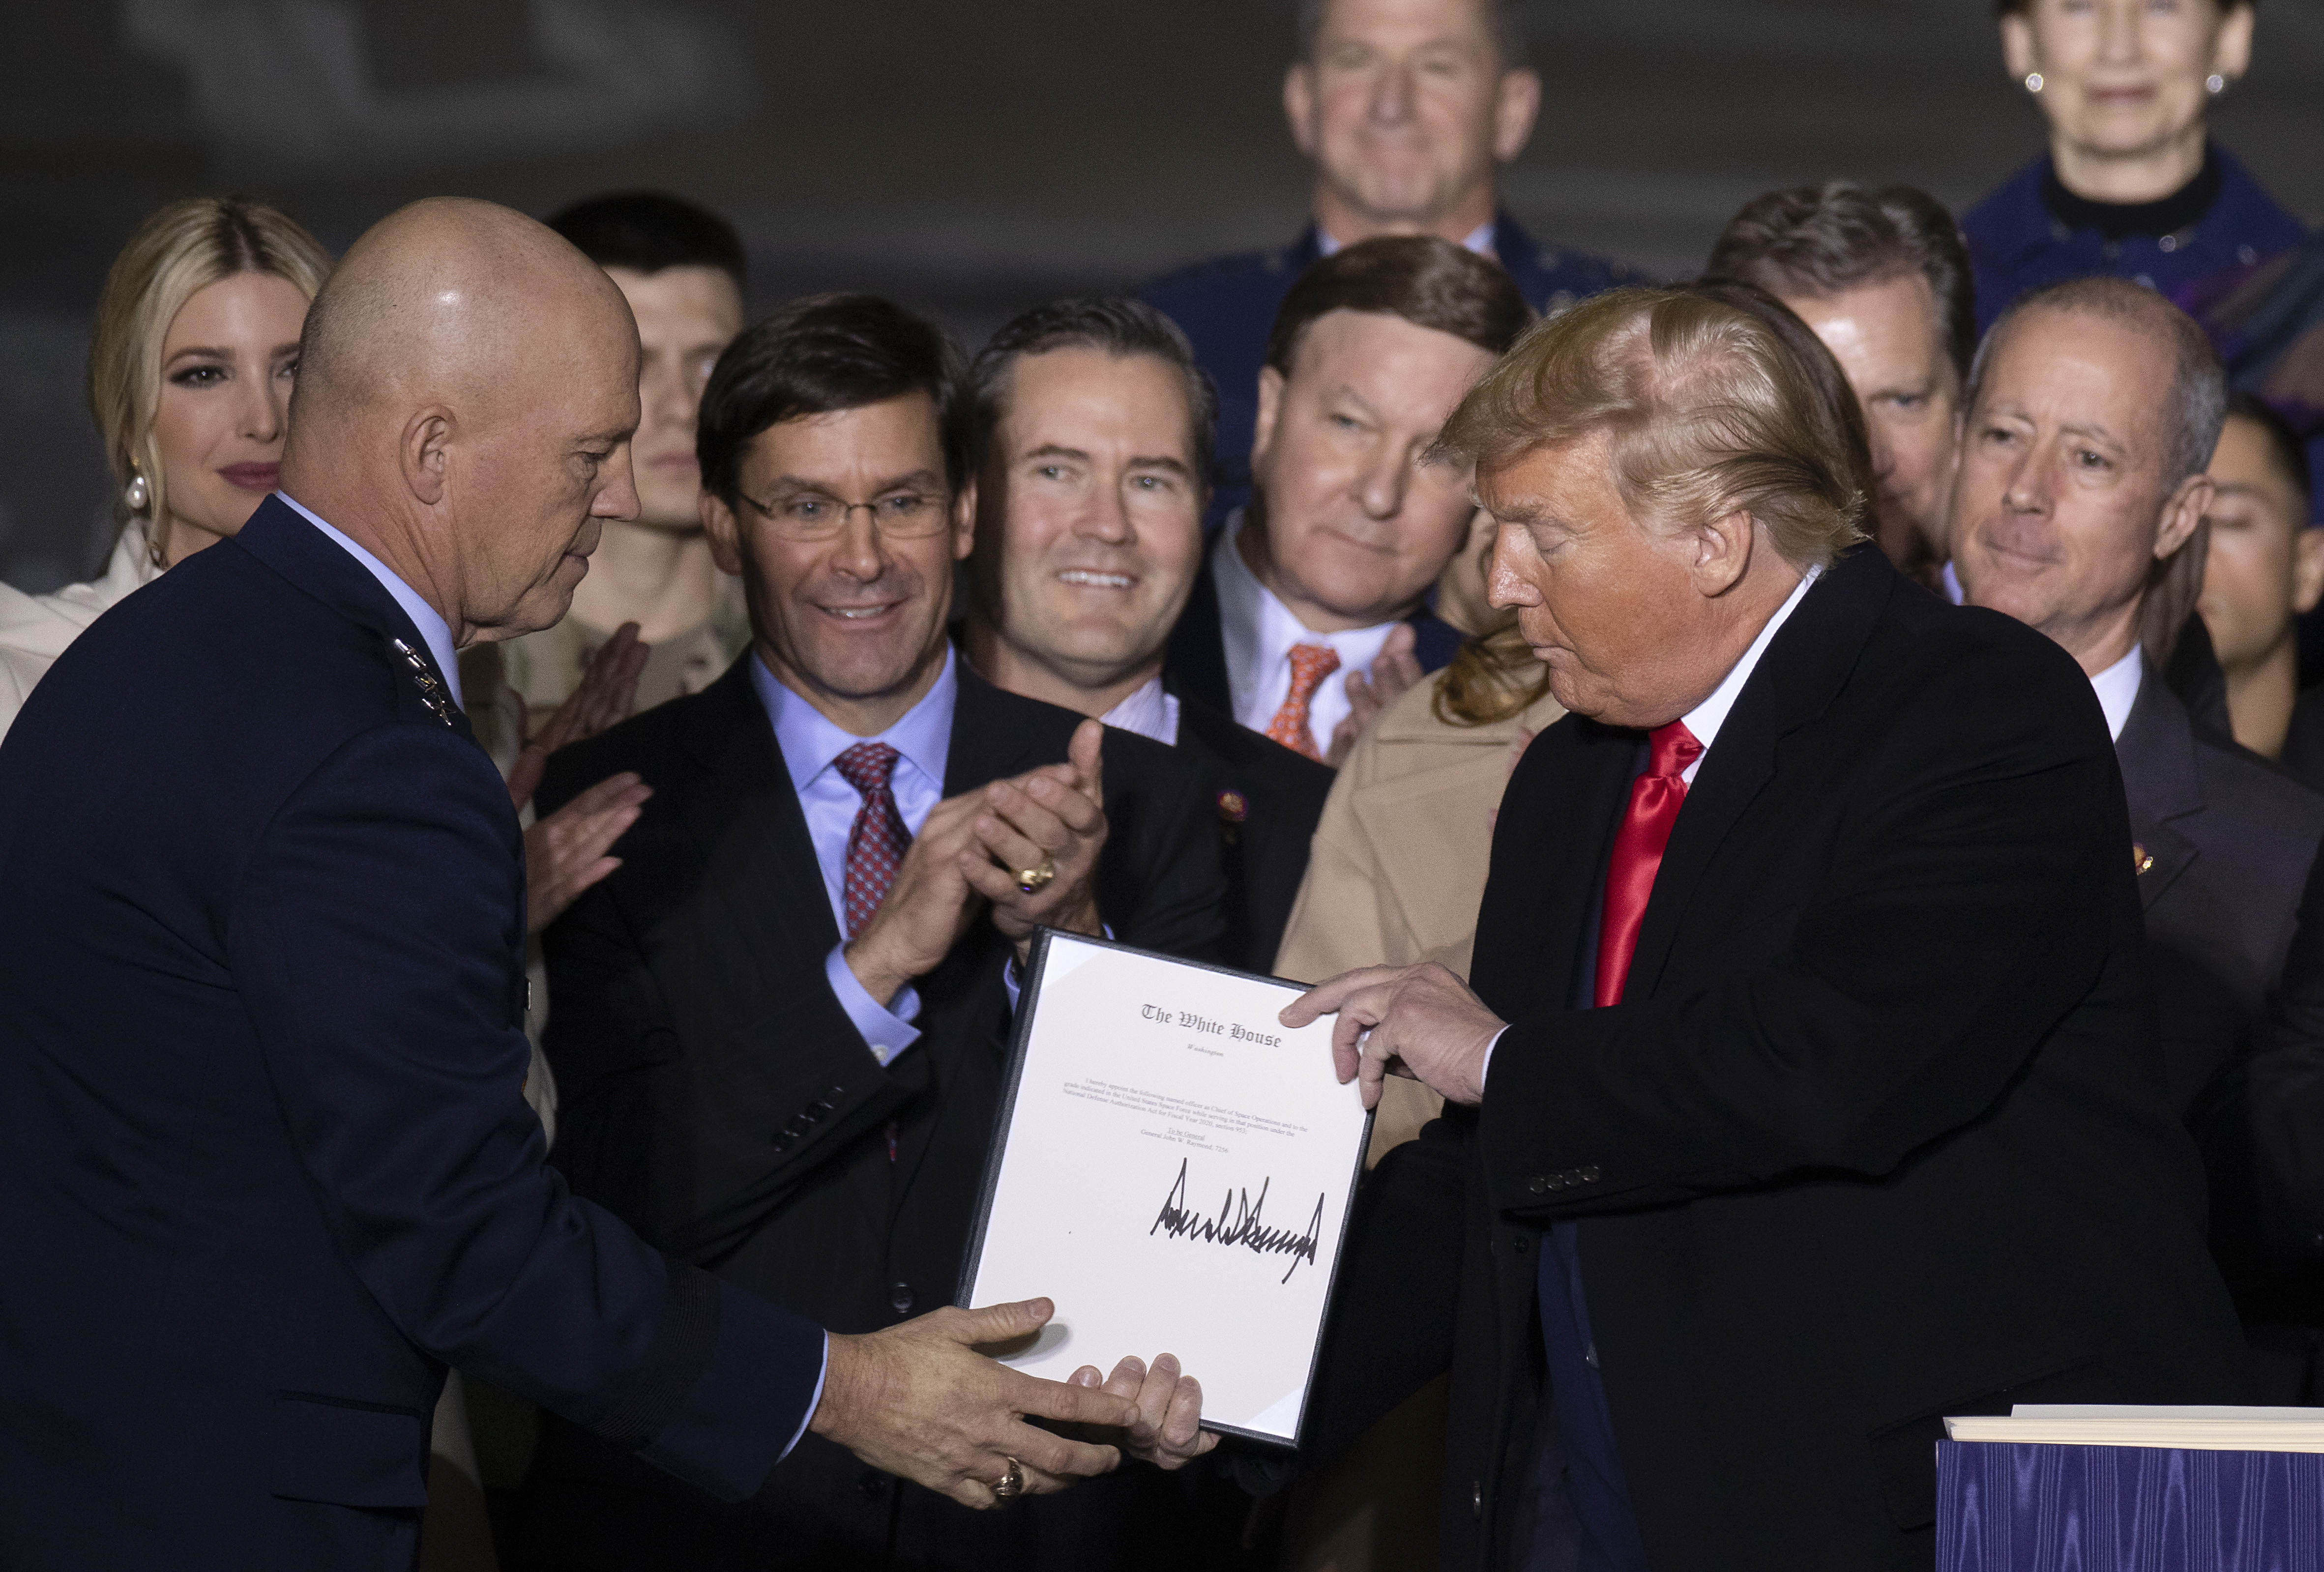 Operations Chef John Raymond and US President Donald Trump at the signing ceremony for S.1709, The National Defense Authorization Act for Fiscal Year 2020 on December 20, 2019 in Joint Base Andrews, Maryland. (Tasos Katopodis/Getty Images)